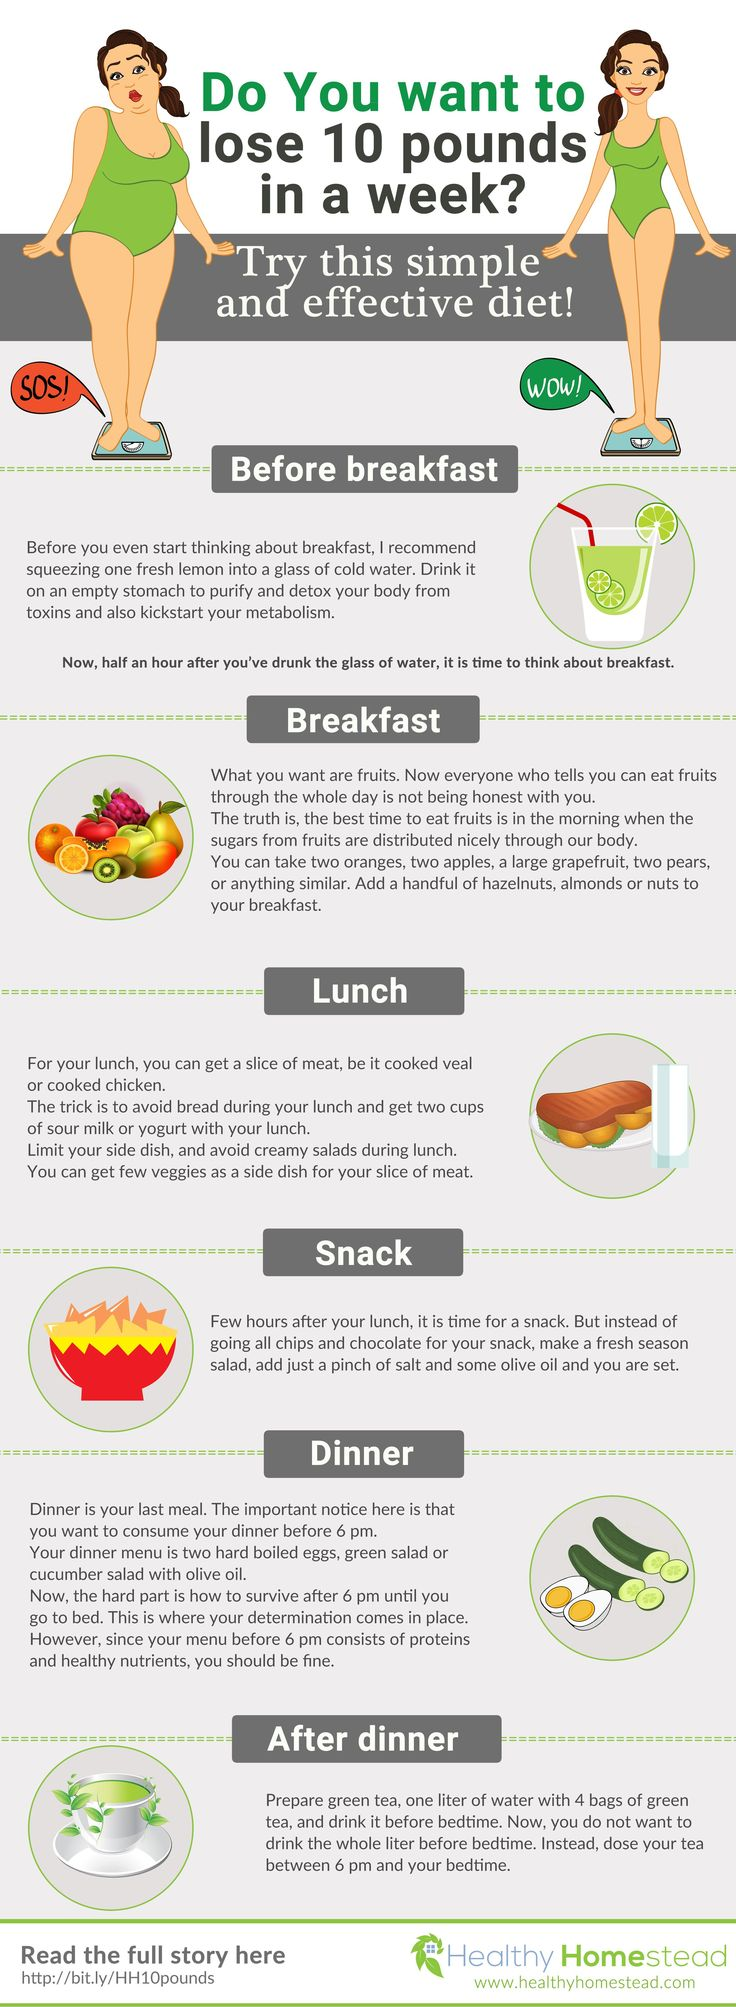 How to lose weight and get toned in 4 weeks